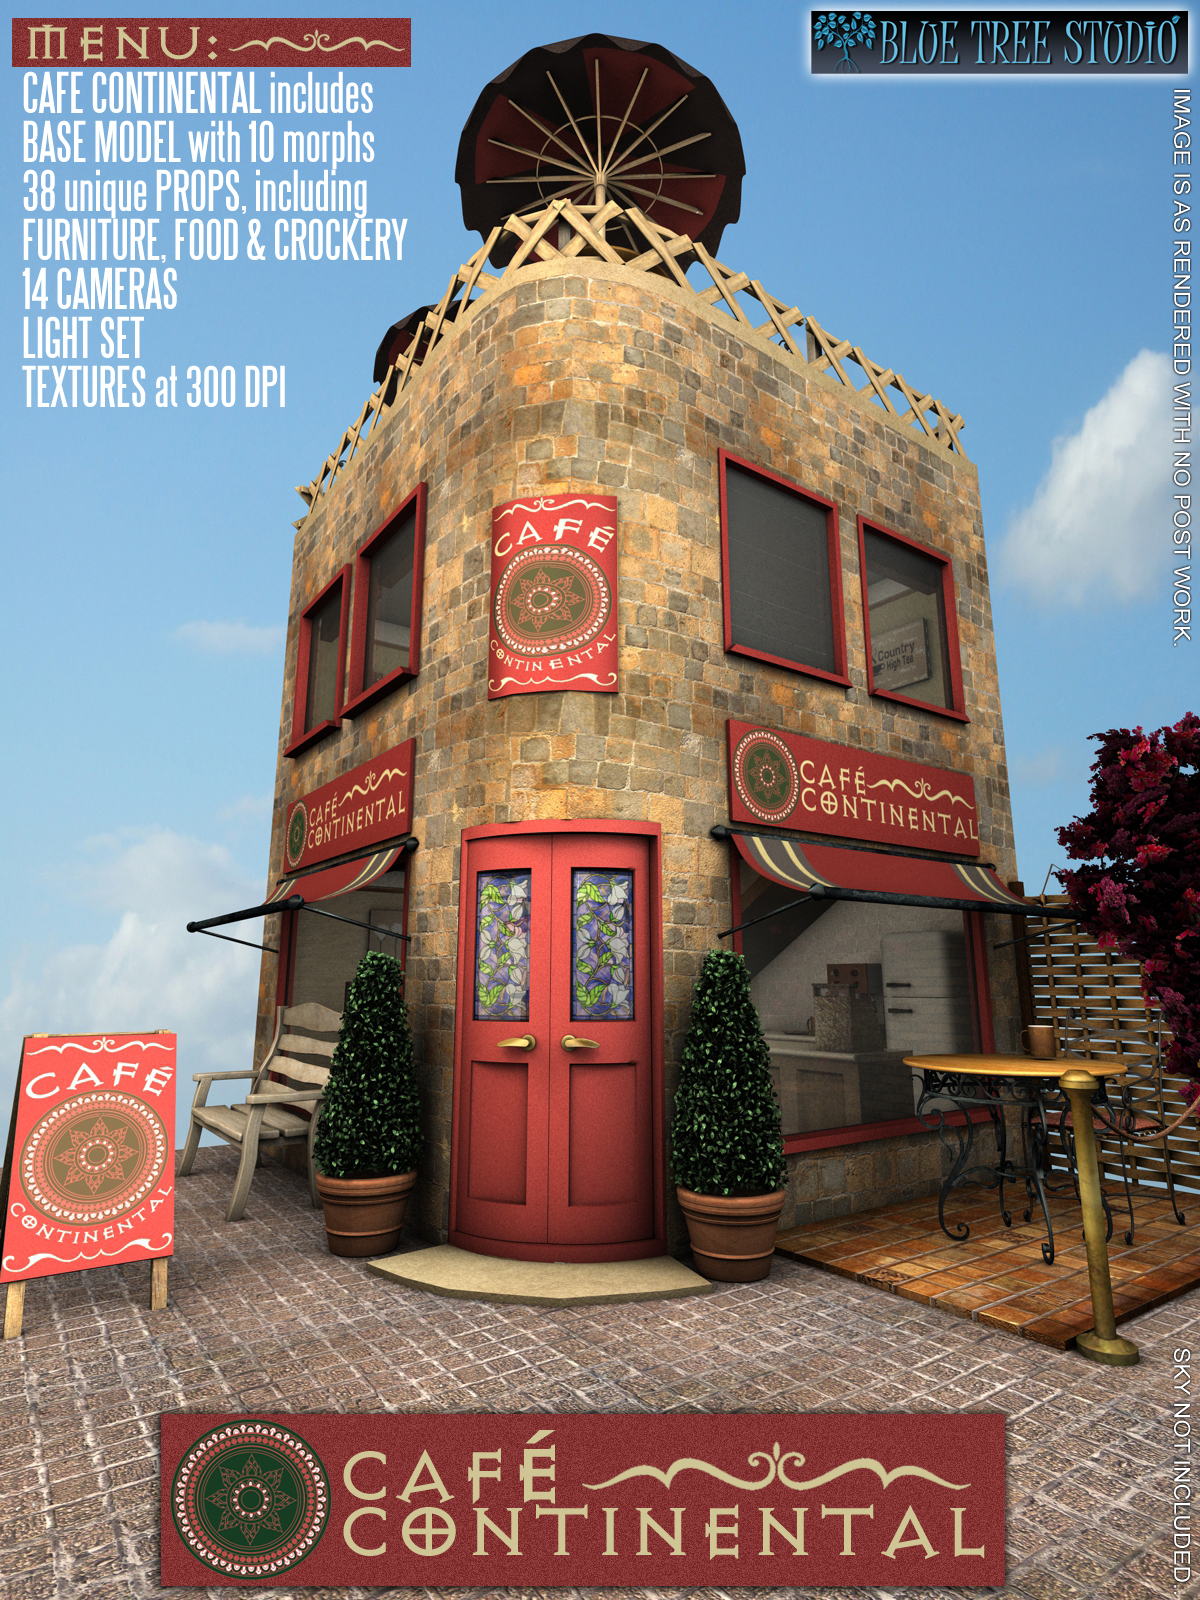 Cafe Continental by BlueTreeStudio